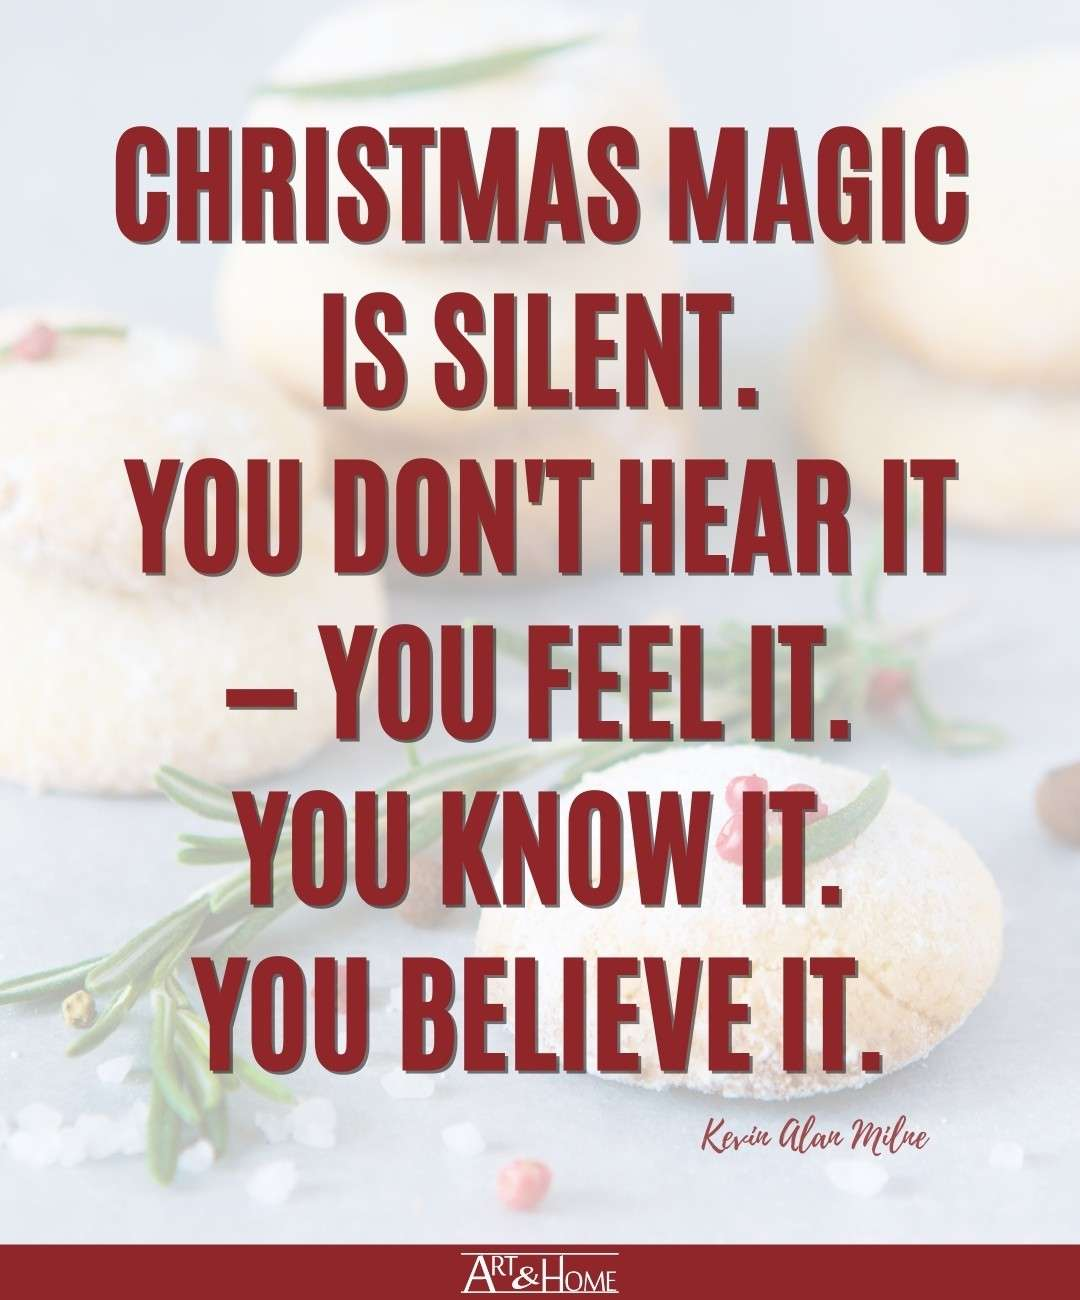 Kevin Alan Milne Christmas Magic Quote